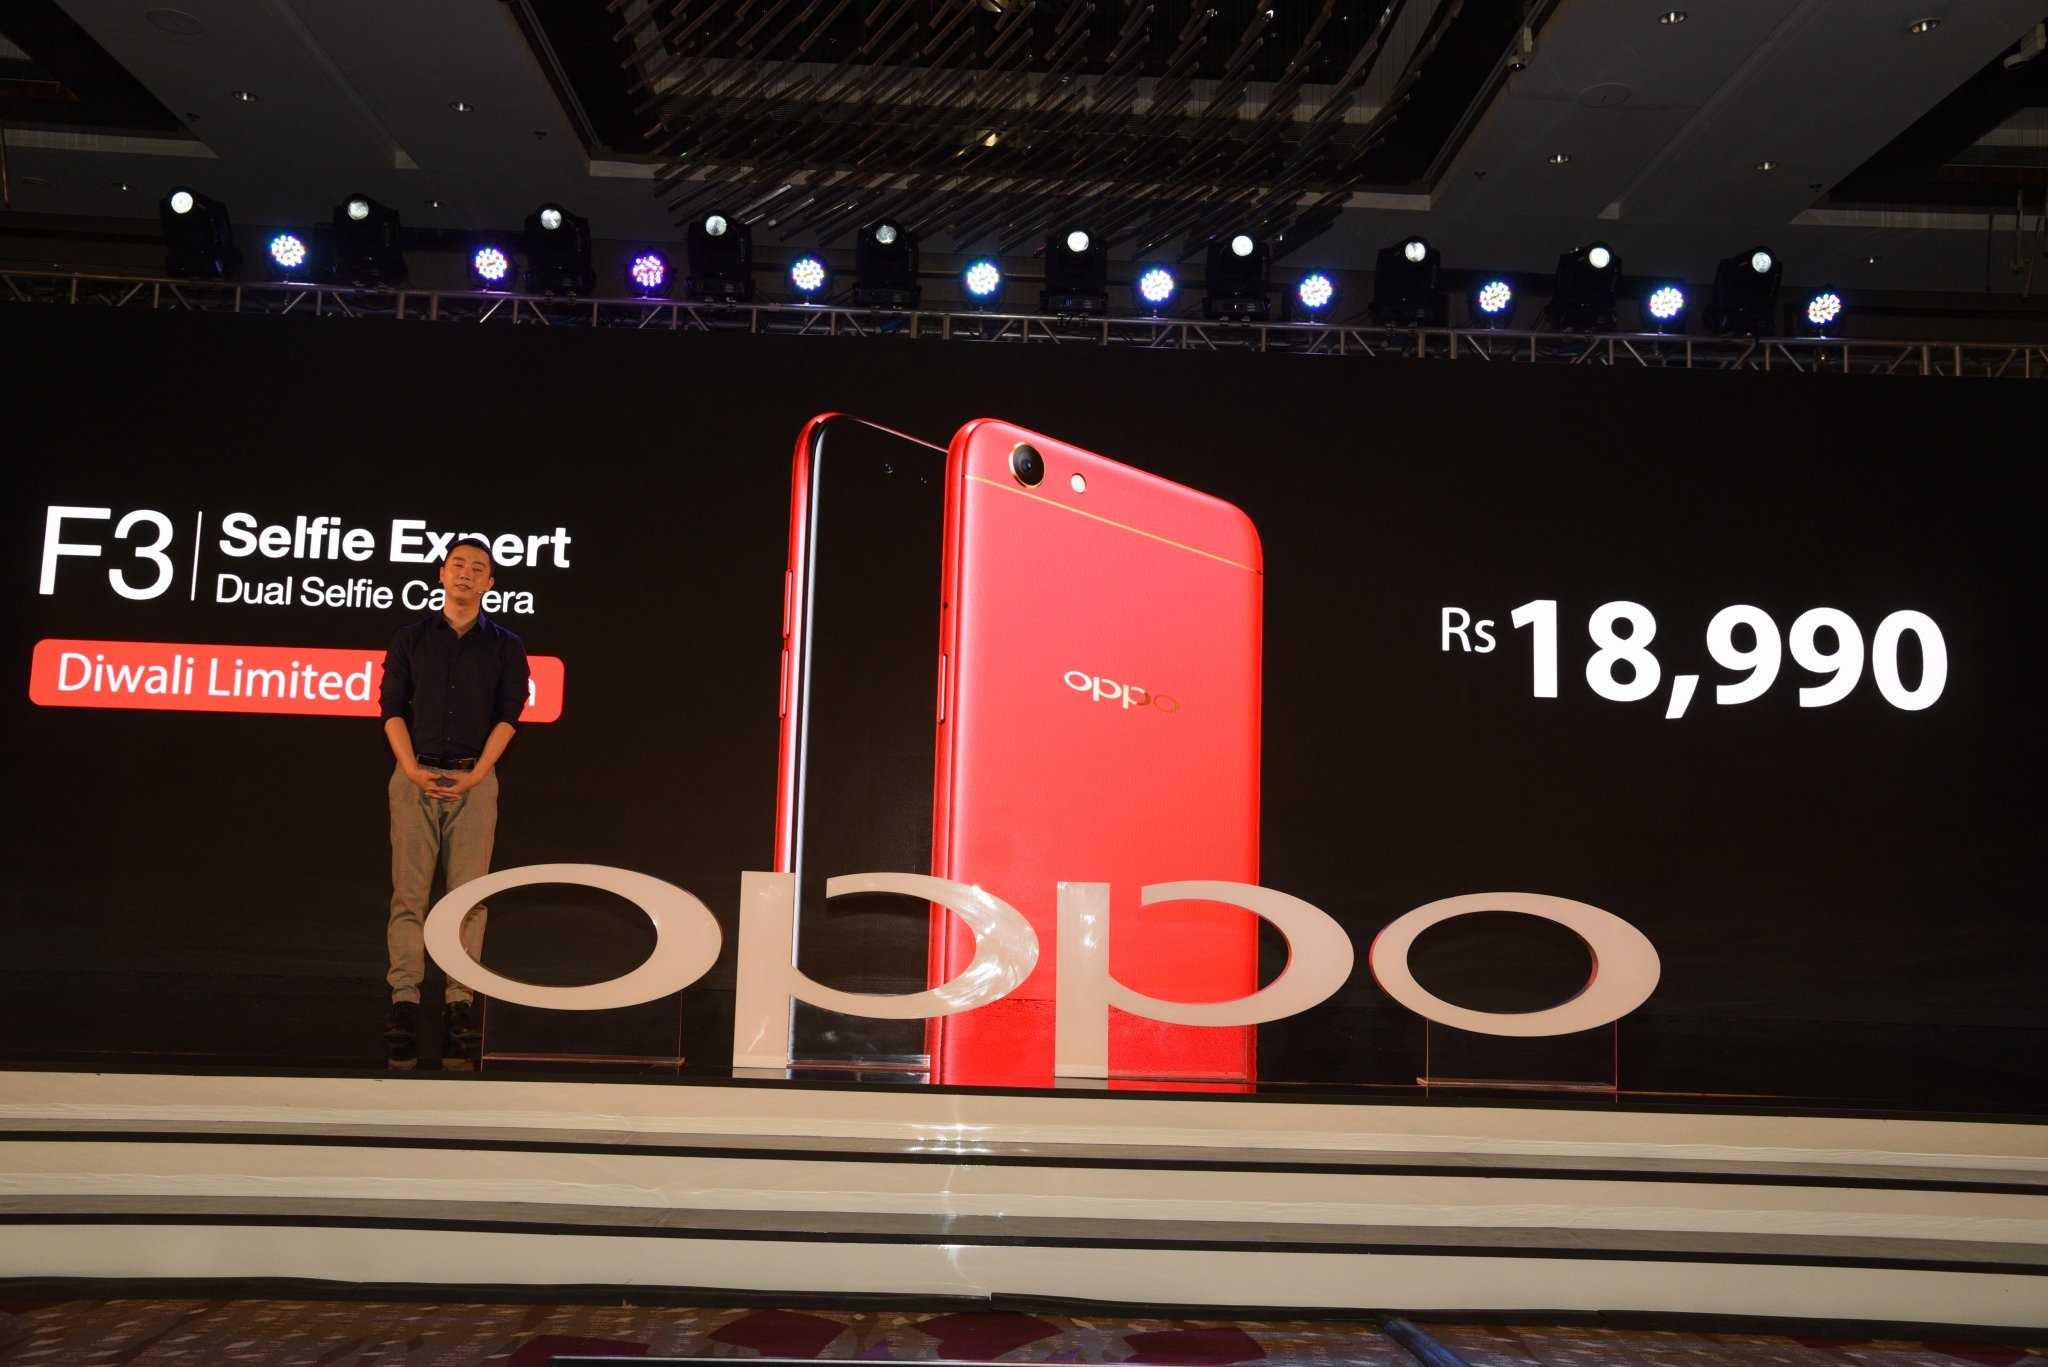 Oppo F3 Diwali Limited Edition Price